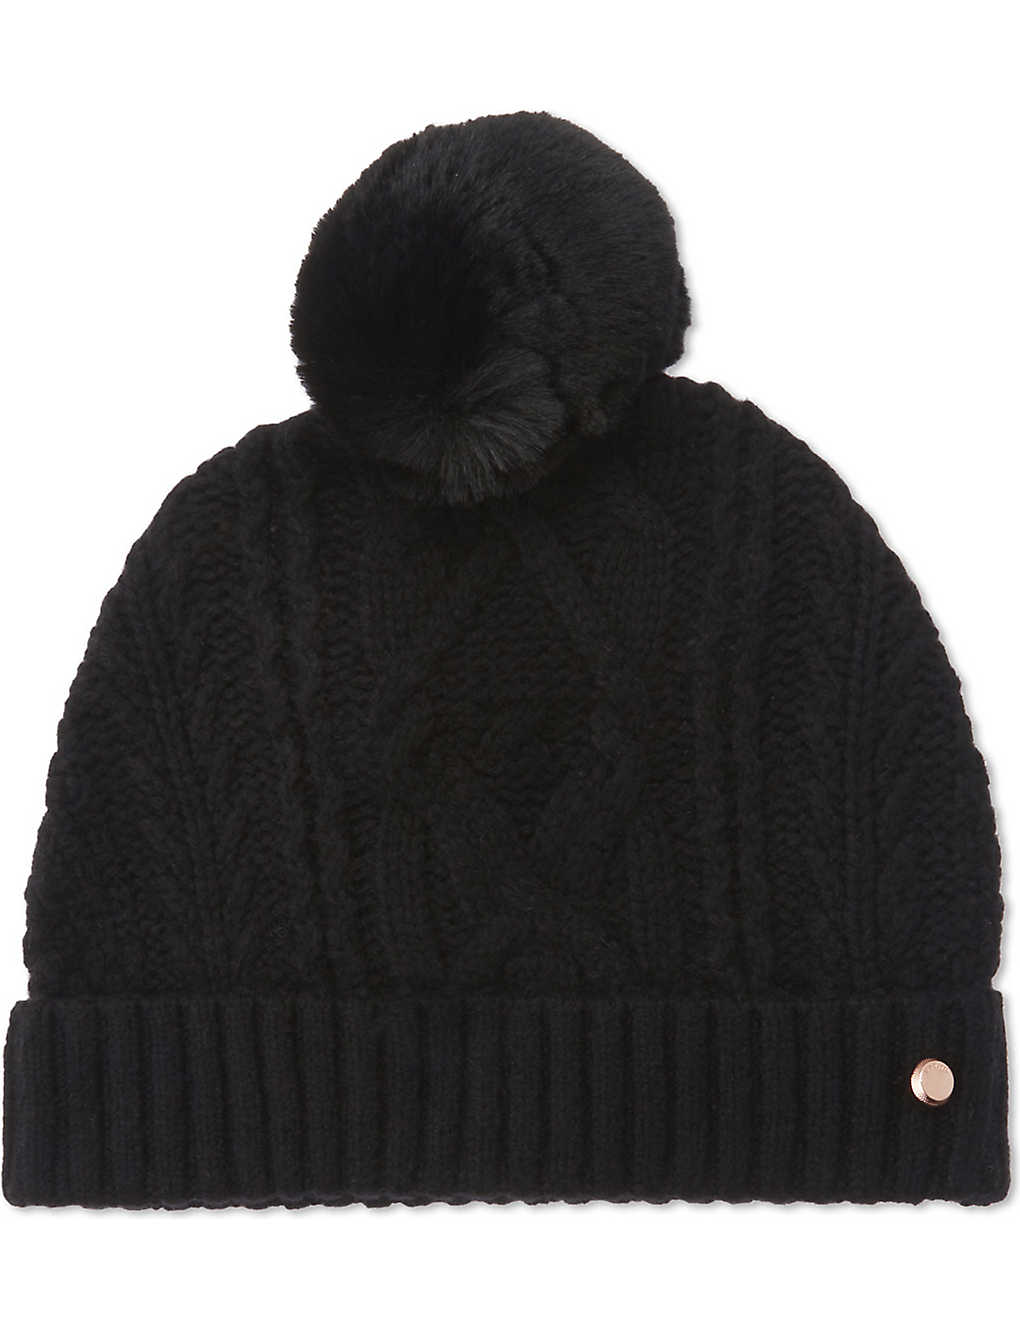 218ee3fb TED BAKER - Kyliee cable knit bobble hat | Selfridges.com